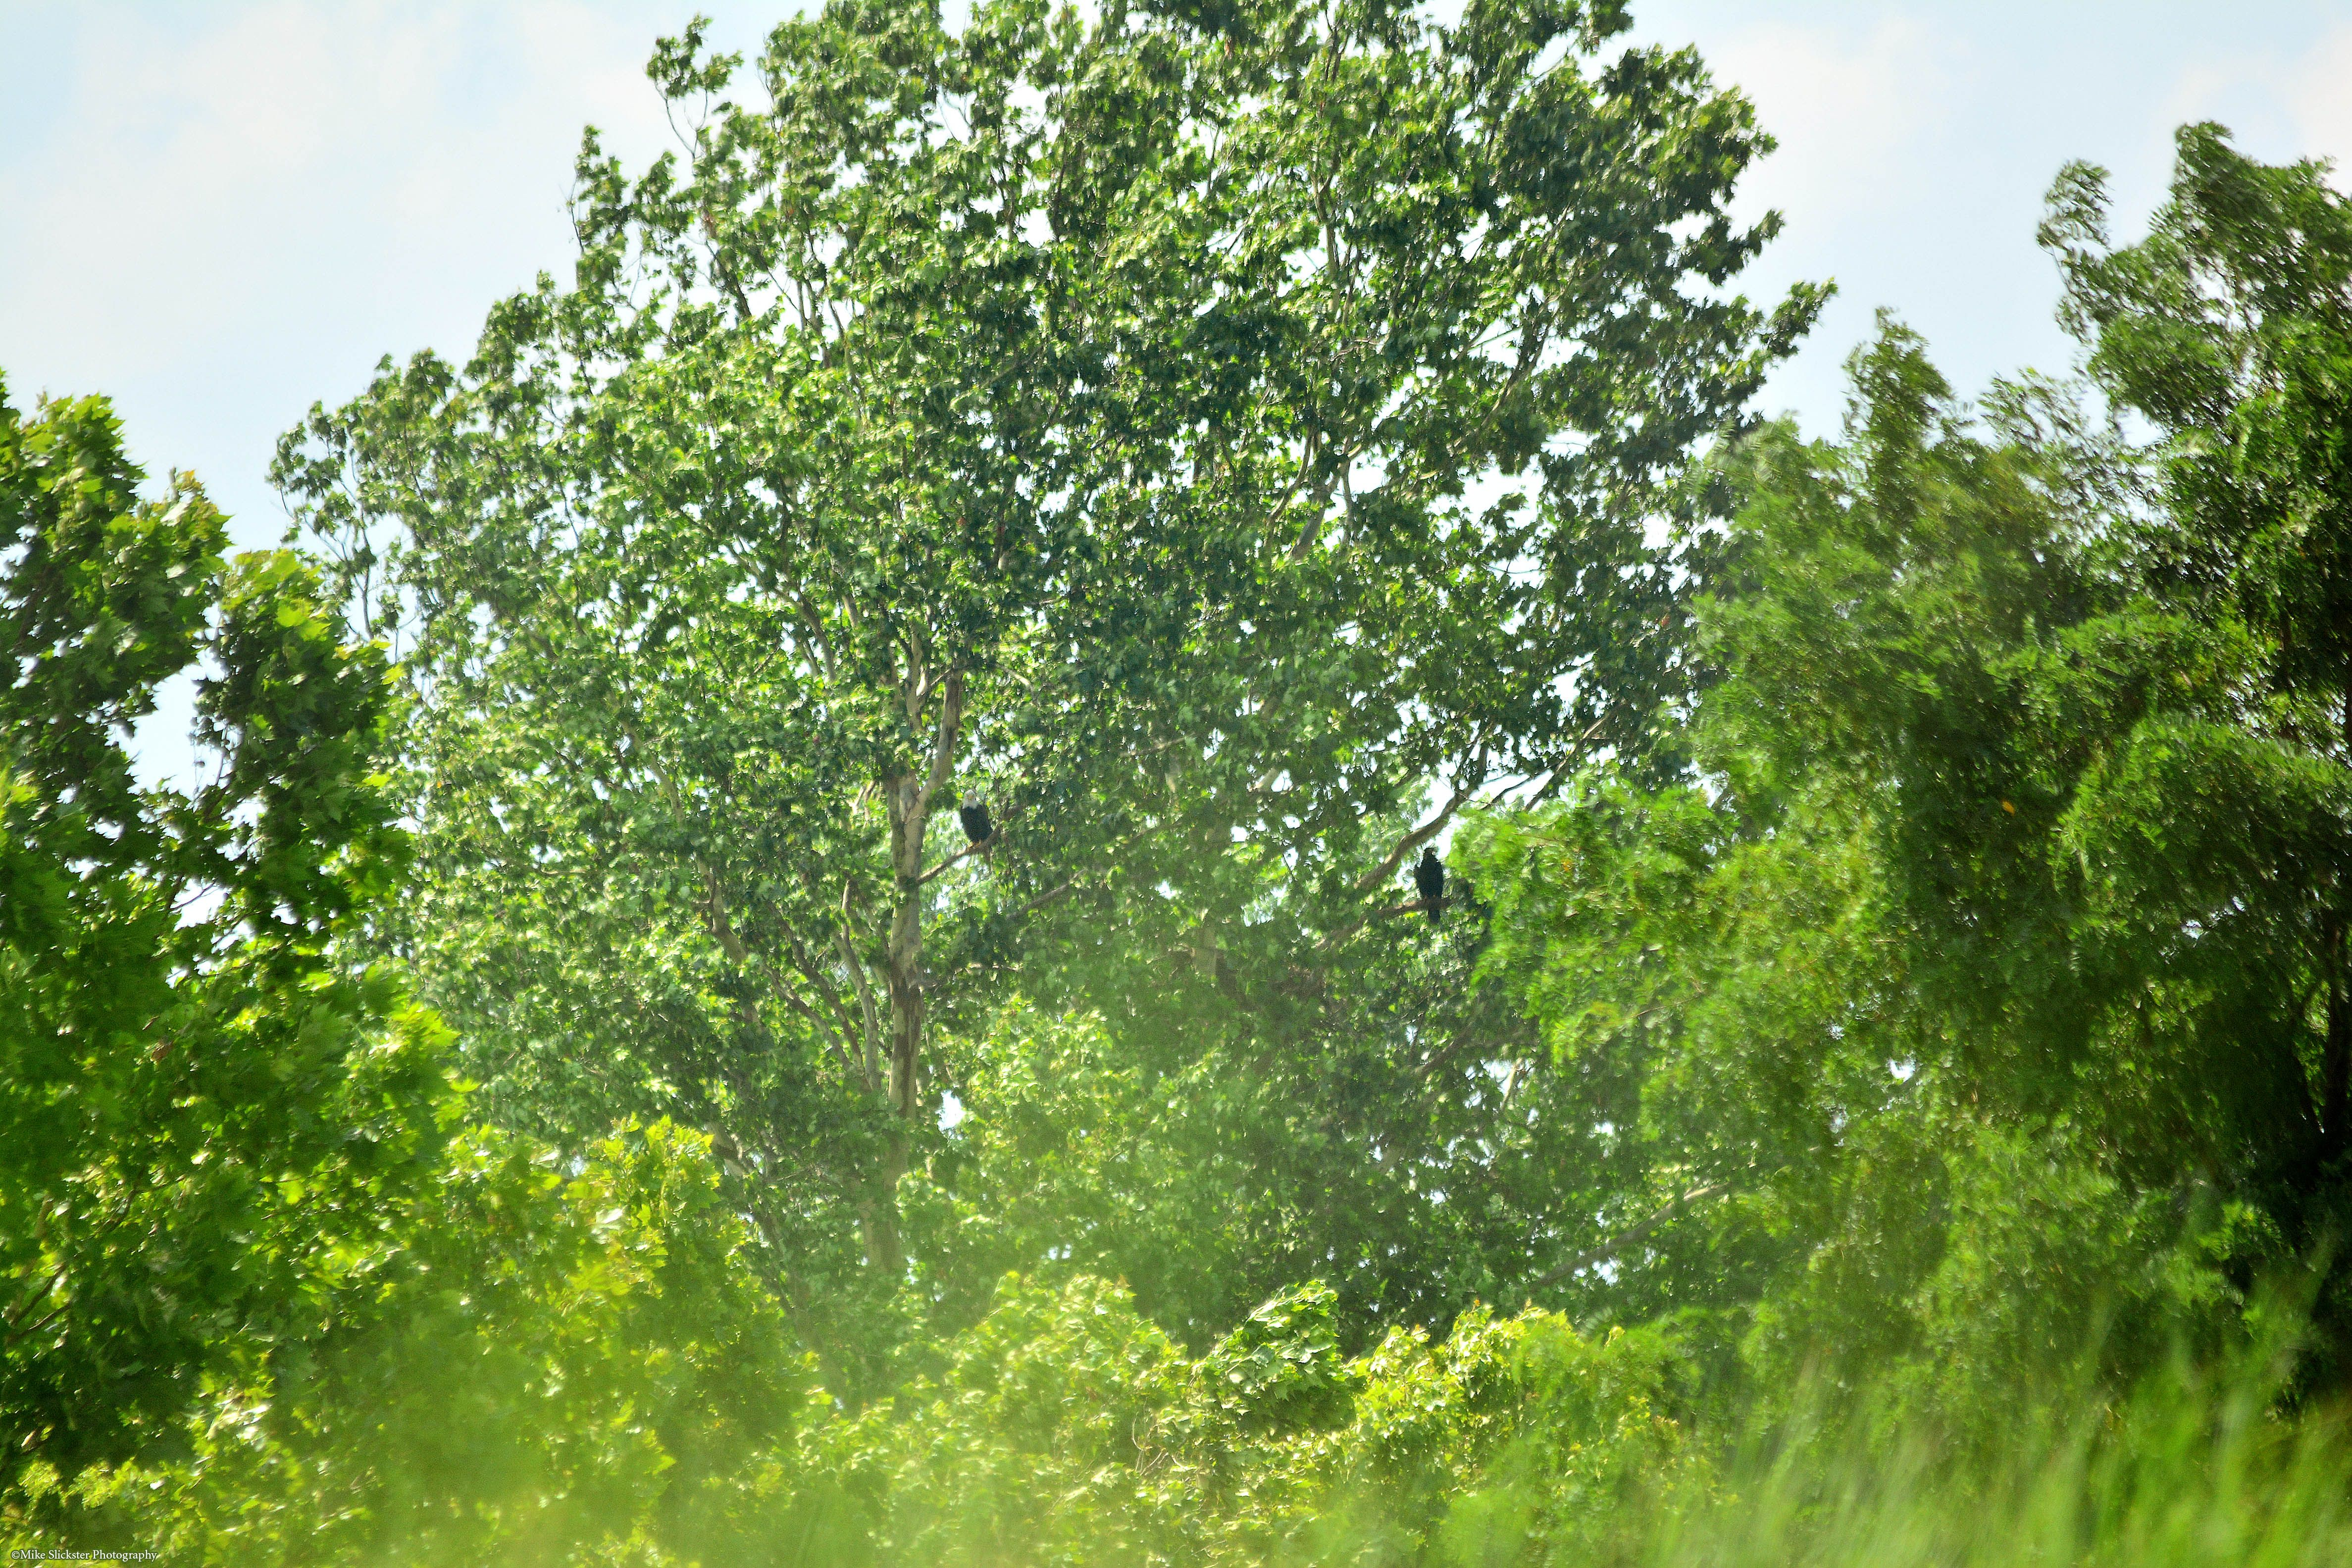 10th July 2017: when I first arrived at the back trail on the way to the confluence of Pennypack Creek with the Delaware River, I noticed an adult and a chick in the sycamore tree, off in the distance.